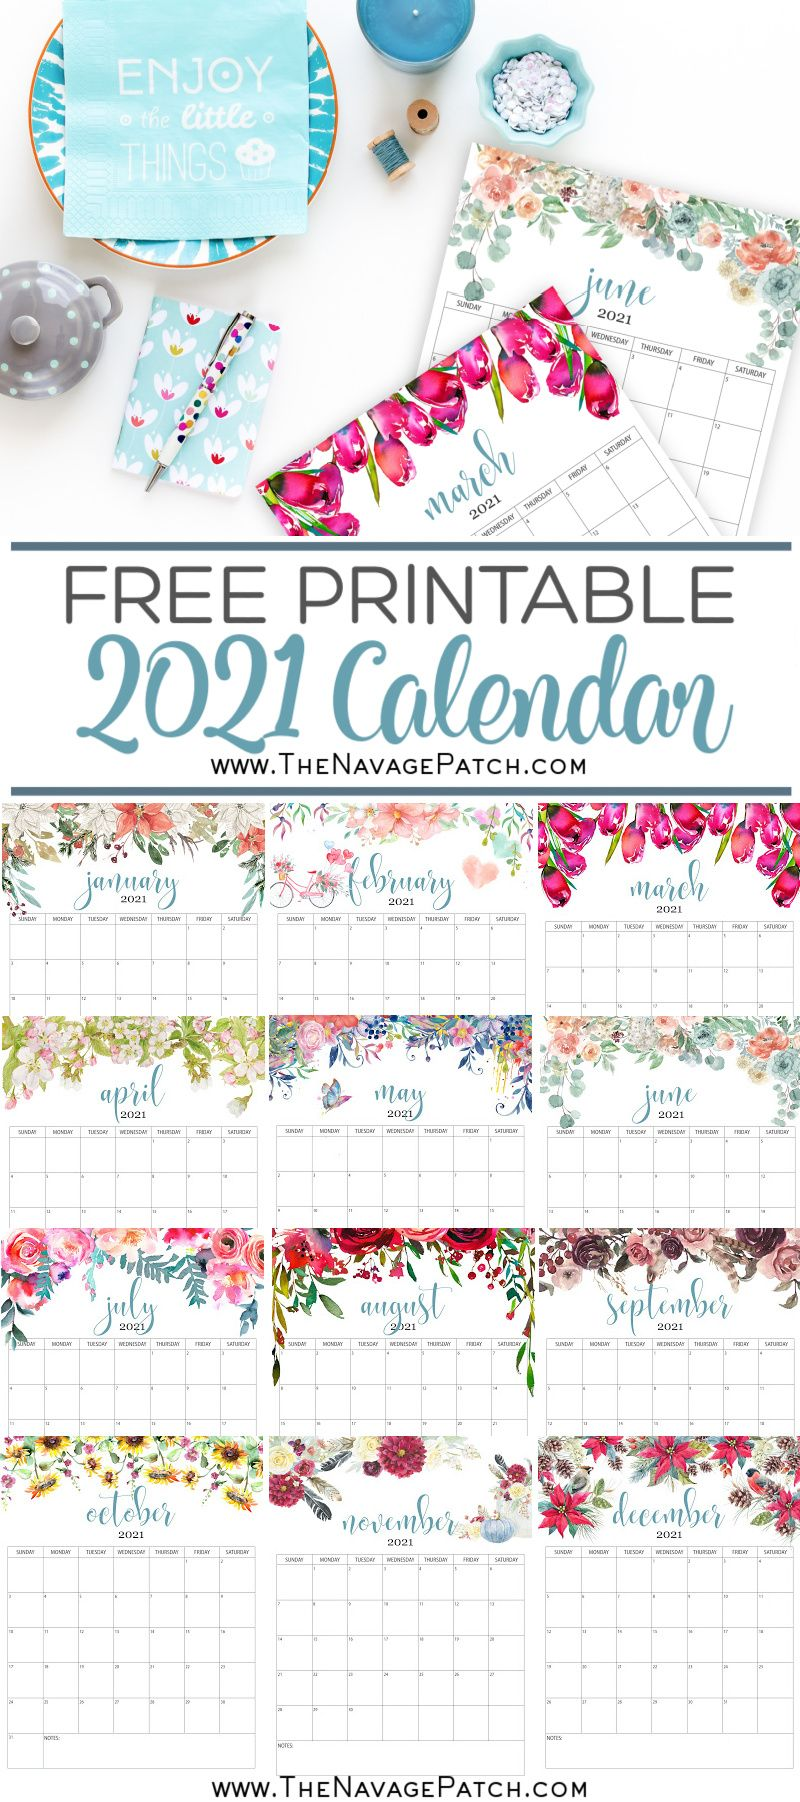 Free Printable Floral Calendar 2021 - The Navage Patch